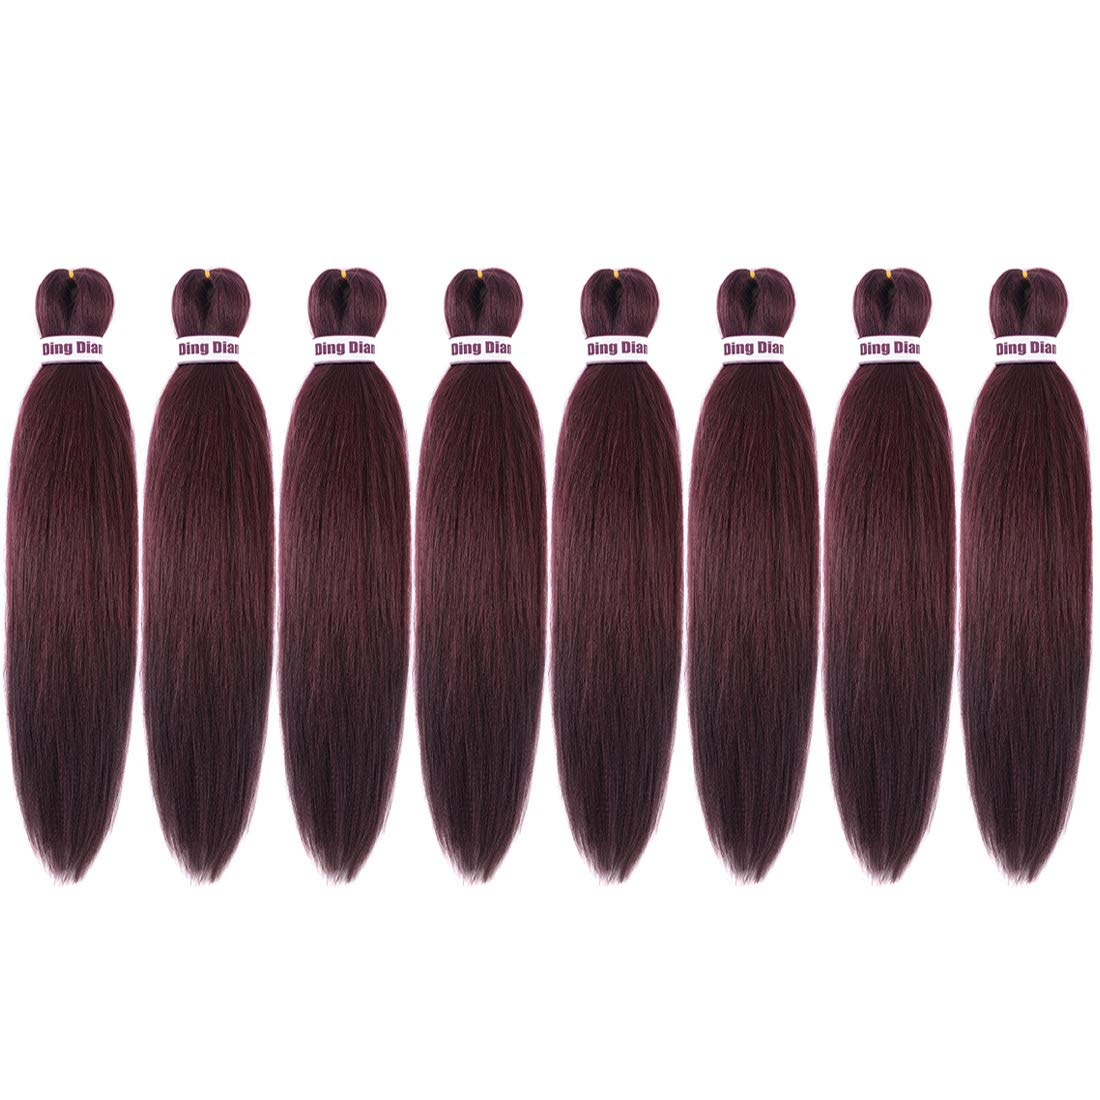 Ding Dian Pre Soldering Stretched Braiding Syntheti Hair Packs Challenge the lowest price of Japan Braid 20